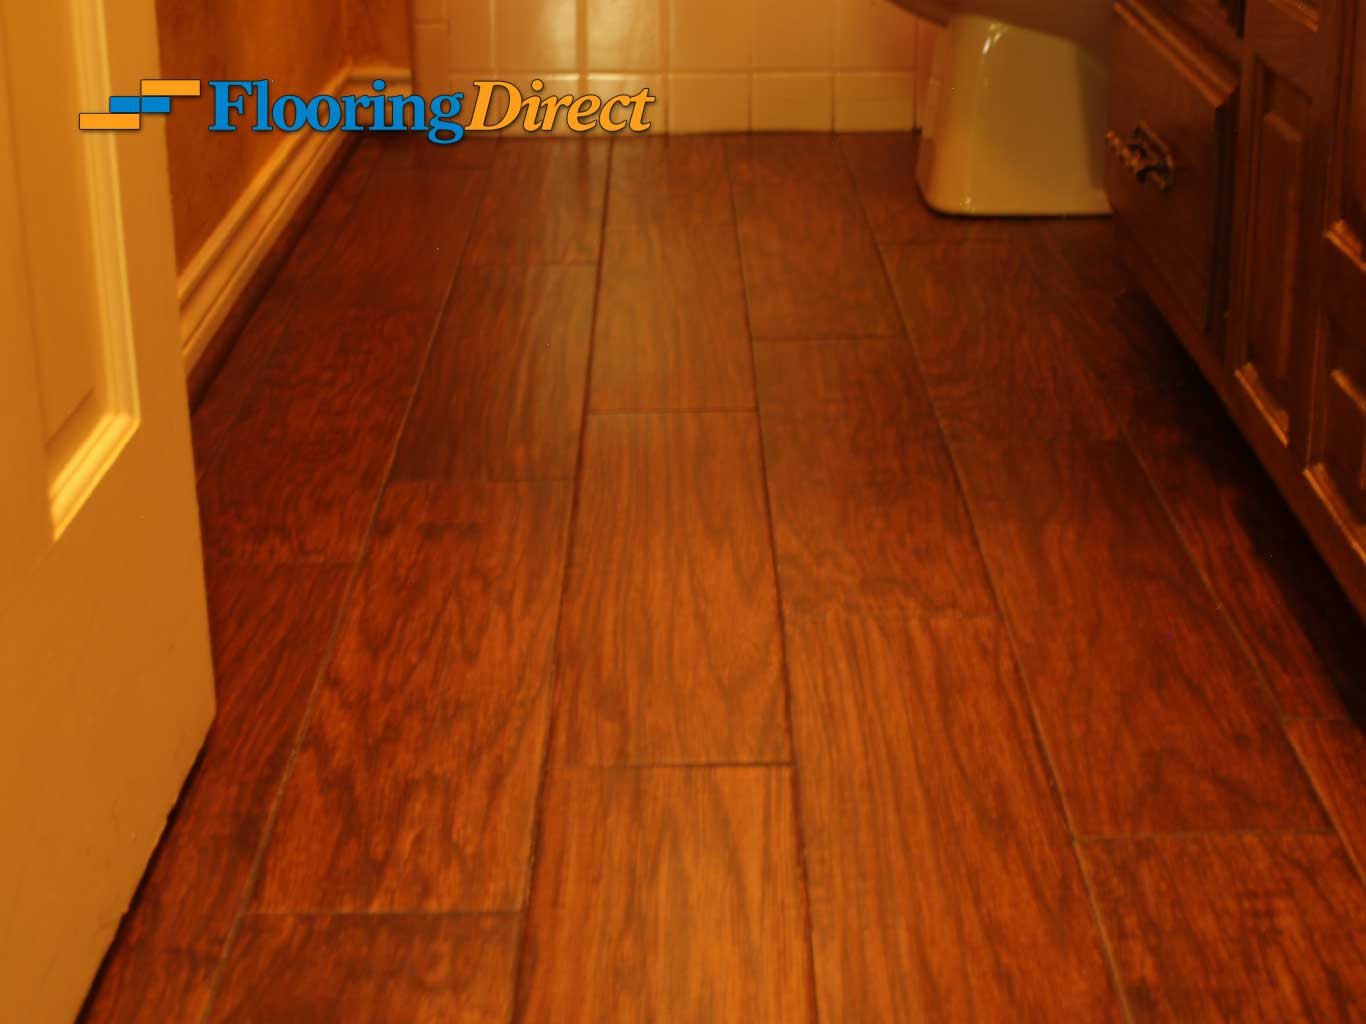 Wood look tile flooring serving all of dfw flooring direct for Direct flooring